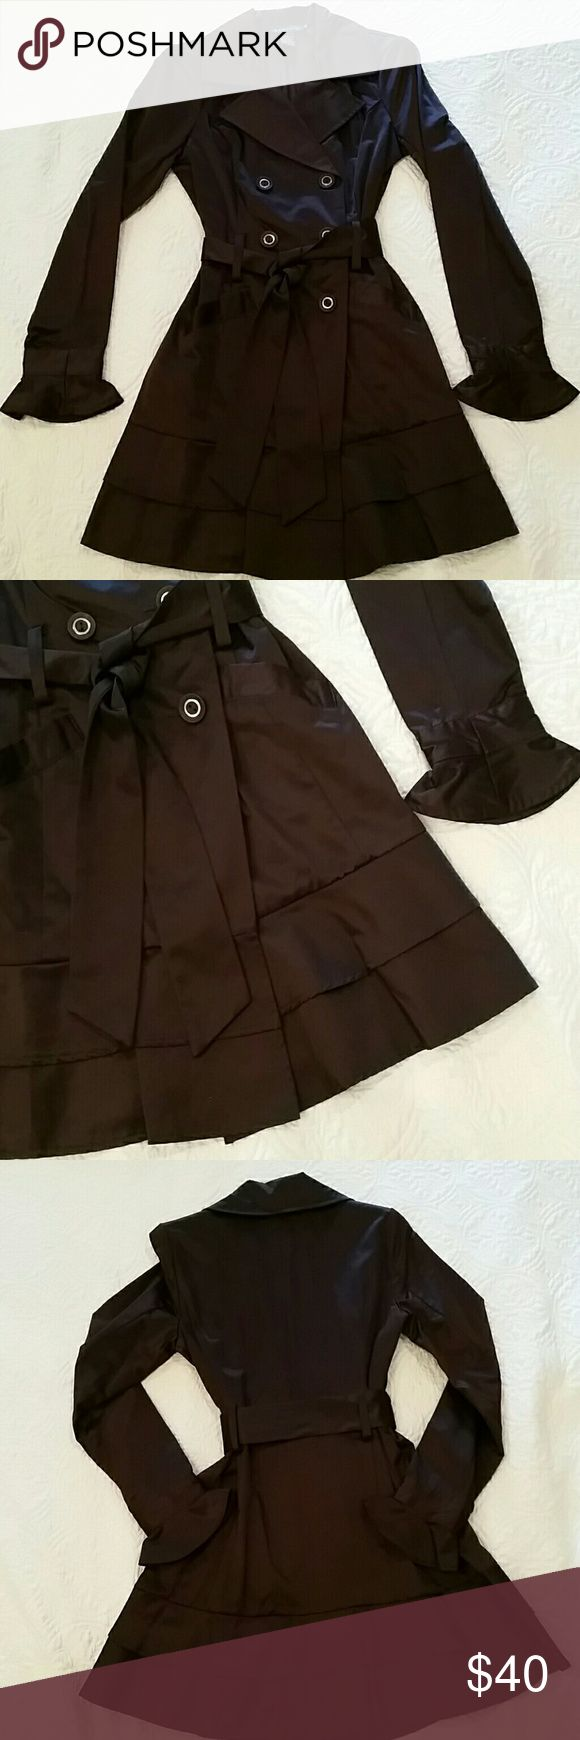 Brown trench coat Light weight trench coat. Never worn. Rampage Jackets & Coats Trench Coats